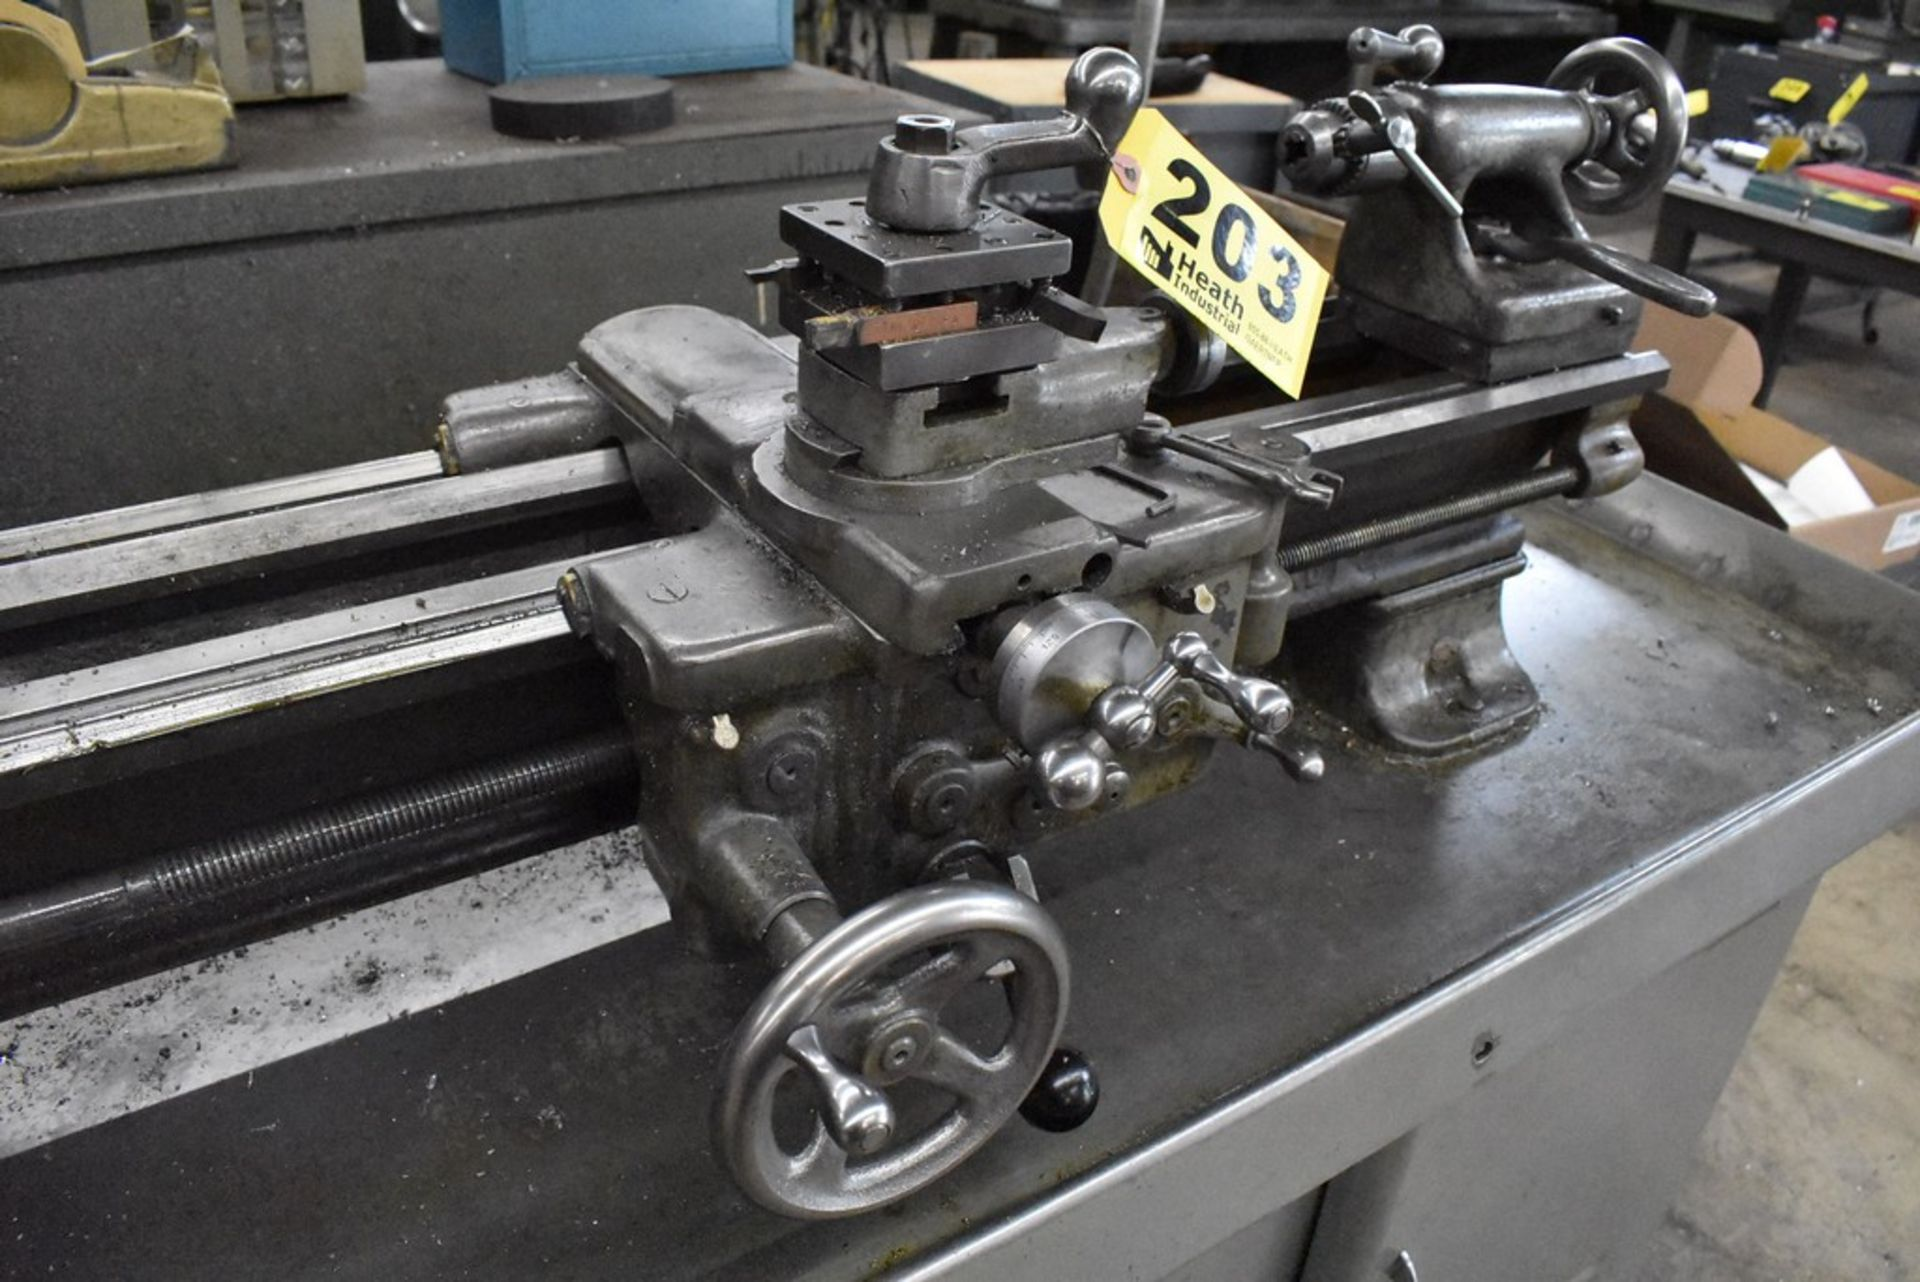 """SOUTH BEND 10""""X30"""" CABINET BASE TOOL ROOM LATHE, S/N 16711RKX12, WITH COLLET CLOSER, 4-WAY TOOL - Image 11 of 13"""